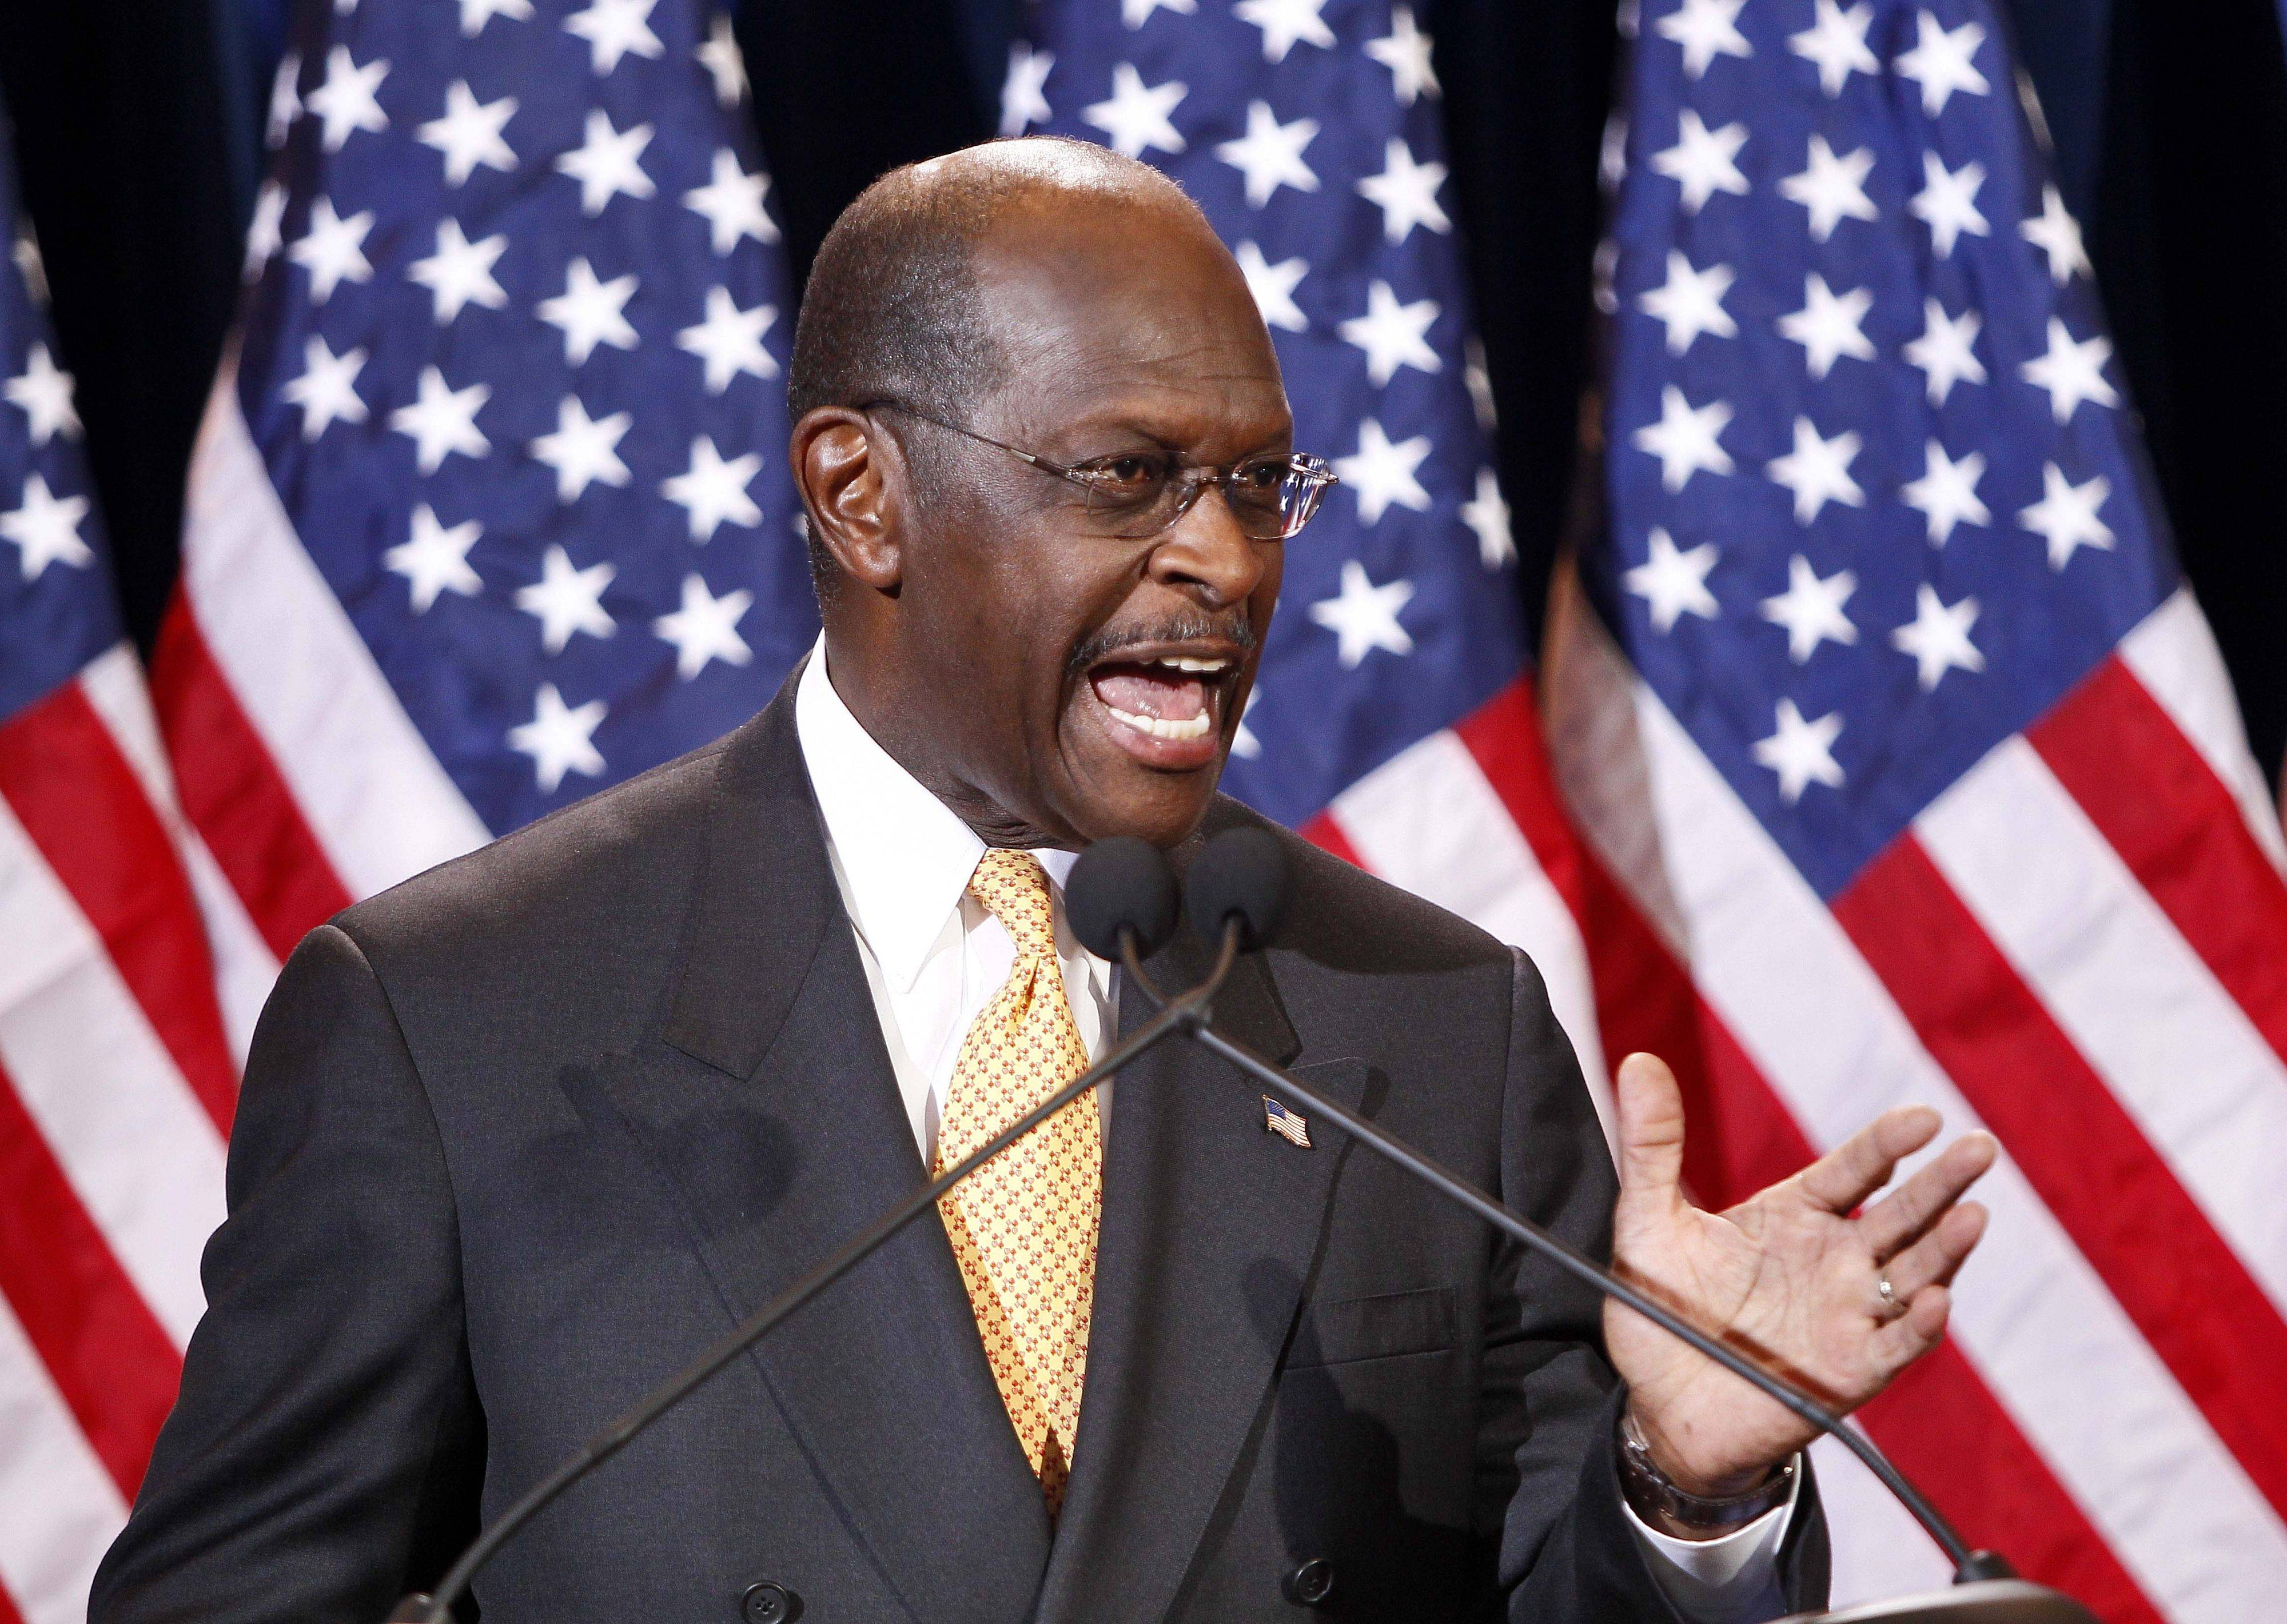 Republican presidential candidate Herman Cain addresses the media Tuesday in Scottsdale, Ariz. Cain was responding to Sharon Bialek, a Glenview woman who accused Cain of making an unwanted sexual advance against her in 1997.